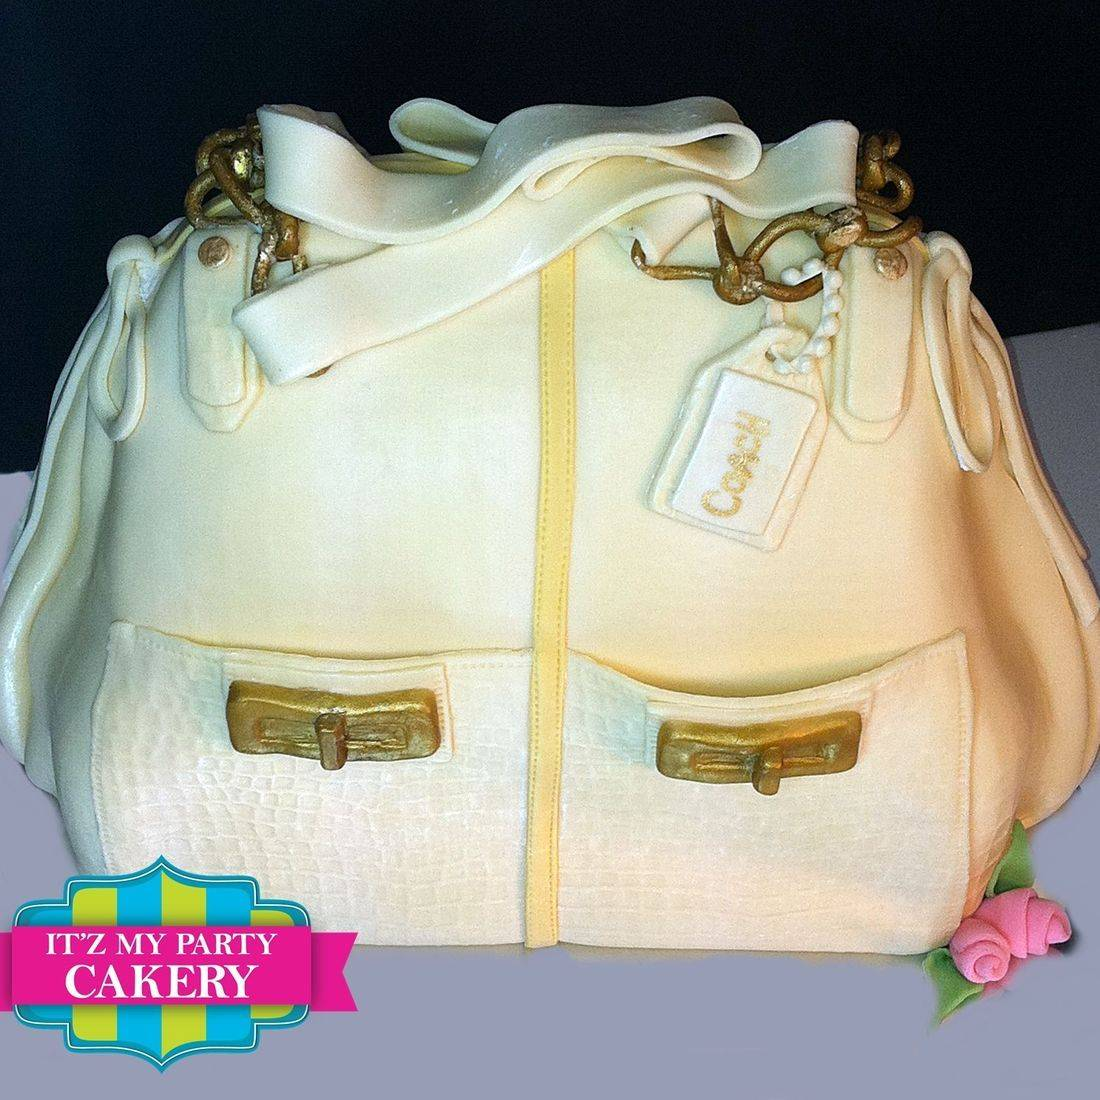 Off white coach purse Dimensional Cake Milwaukee